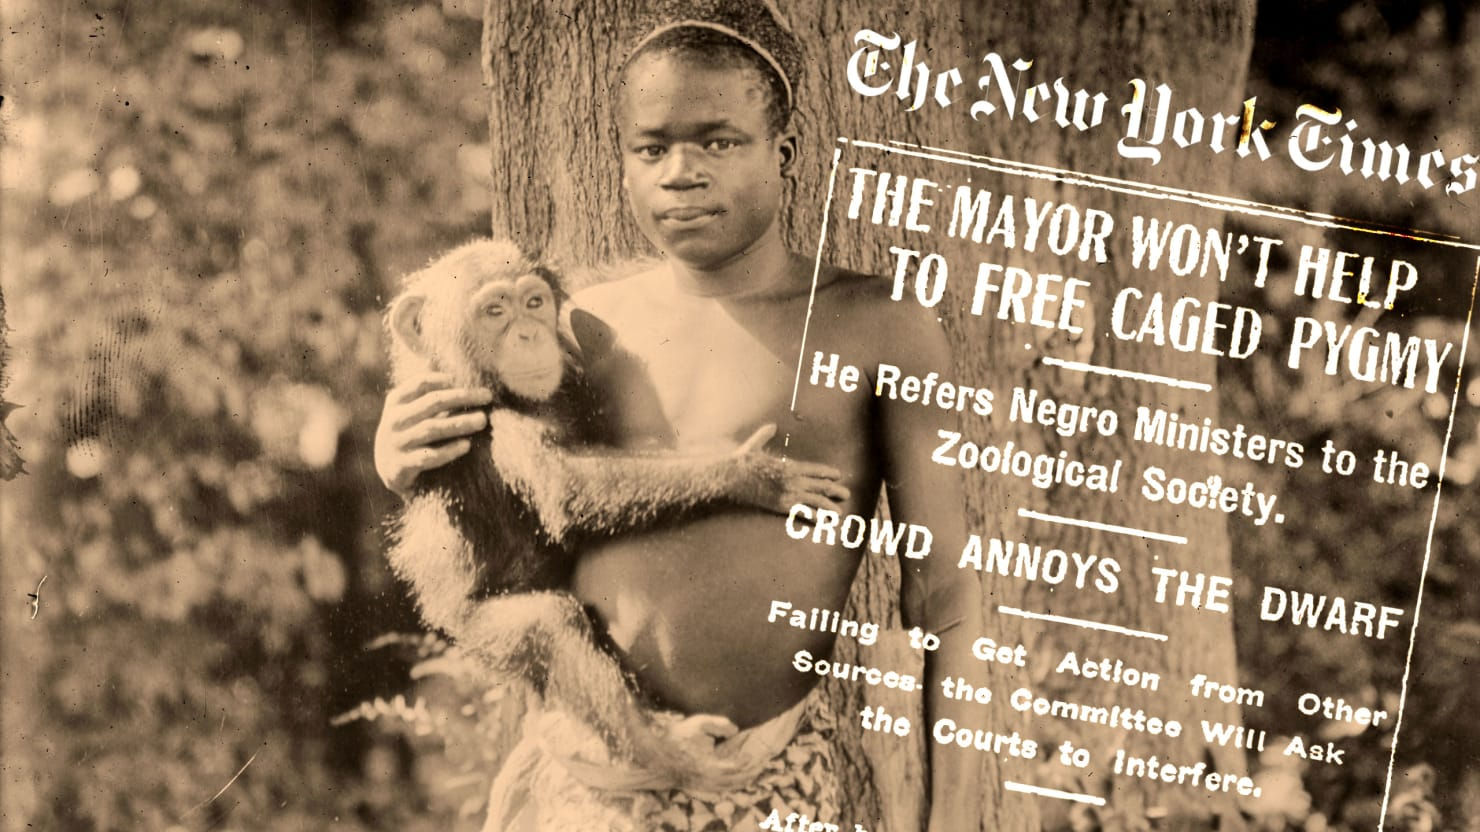 When The New York Times Defended Putting a Black Man in the Bronx Zoo